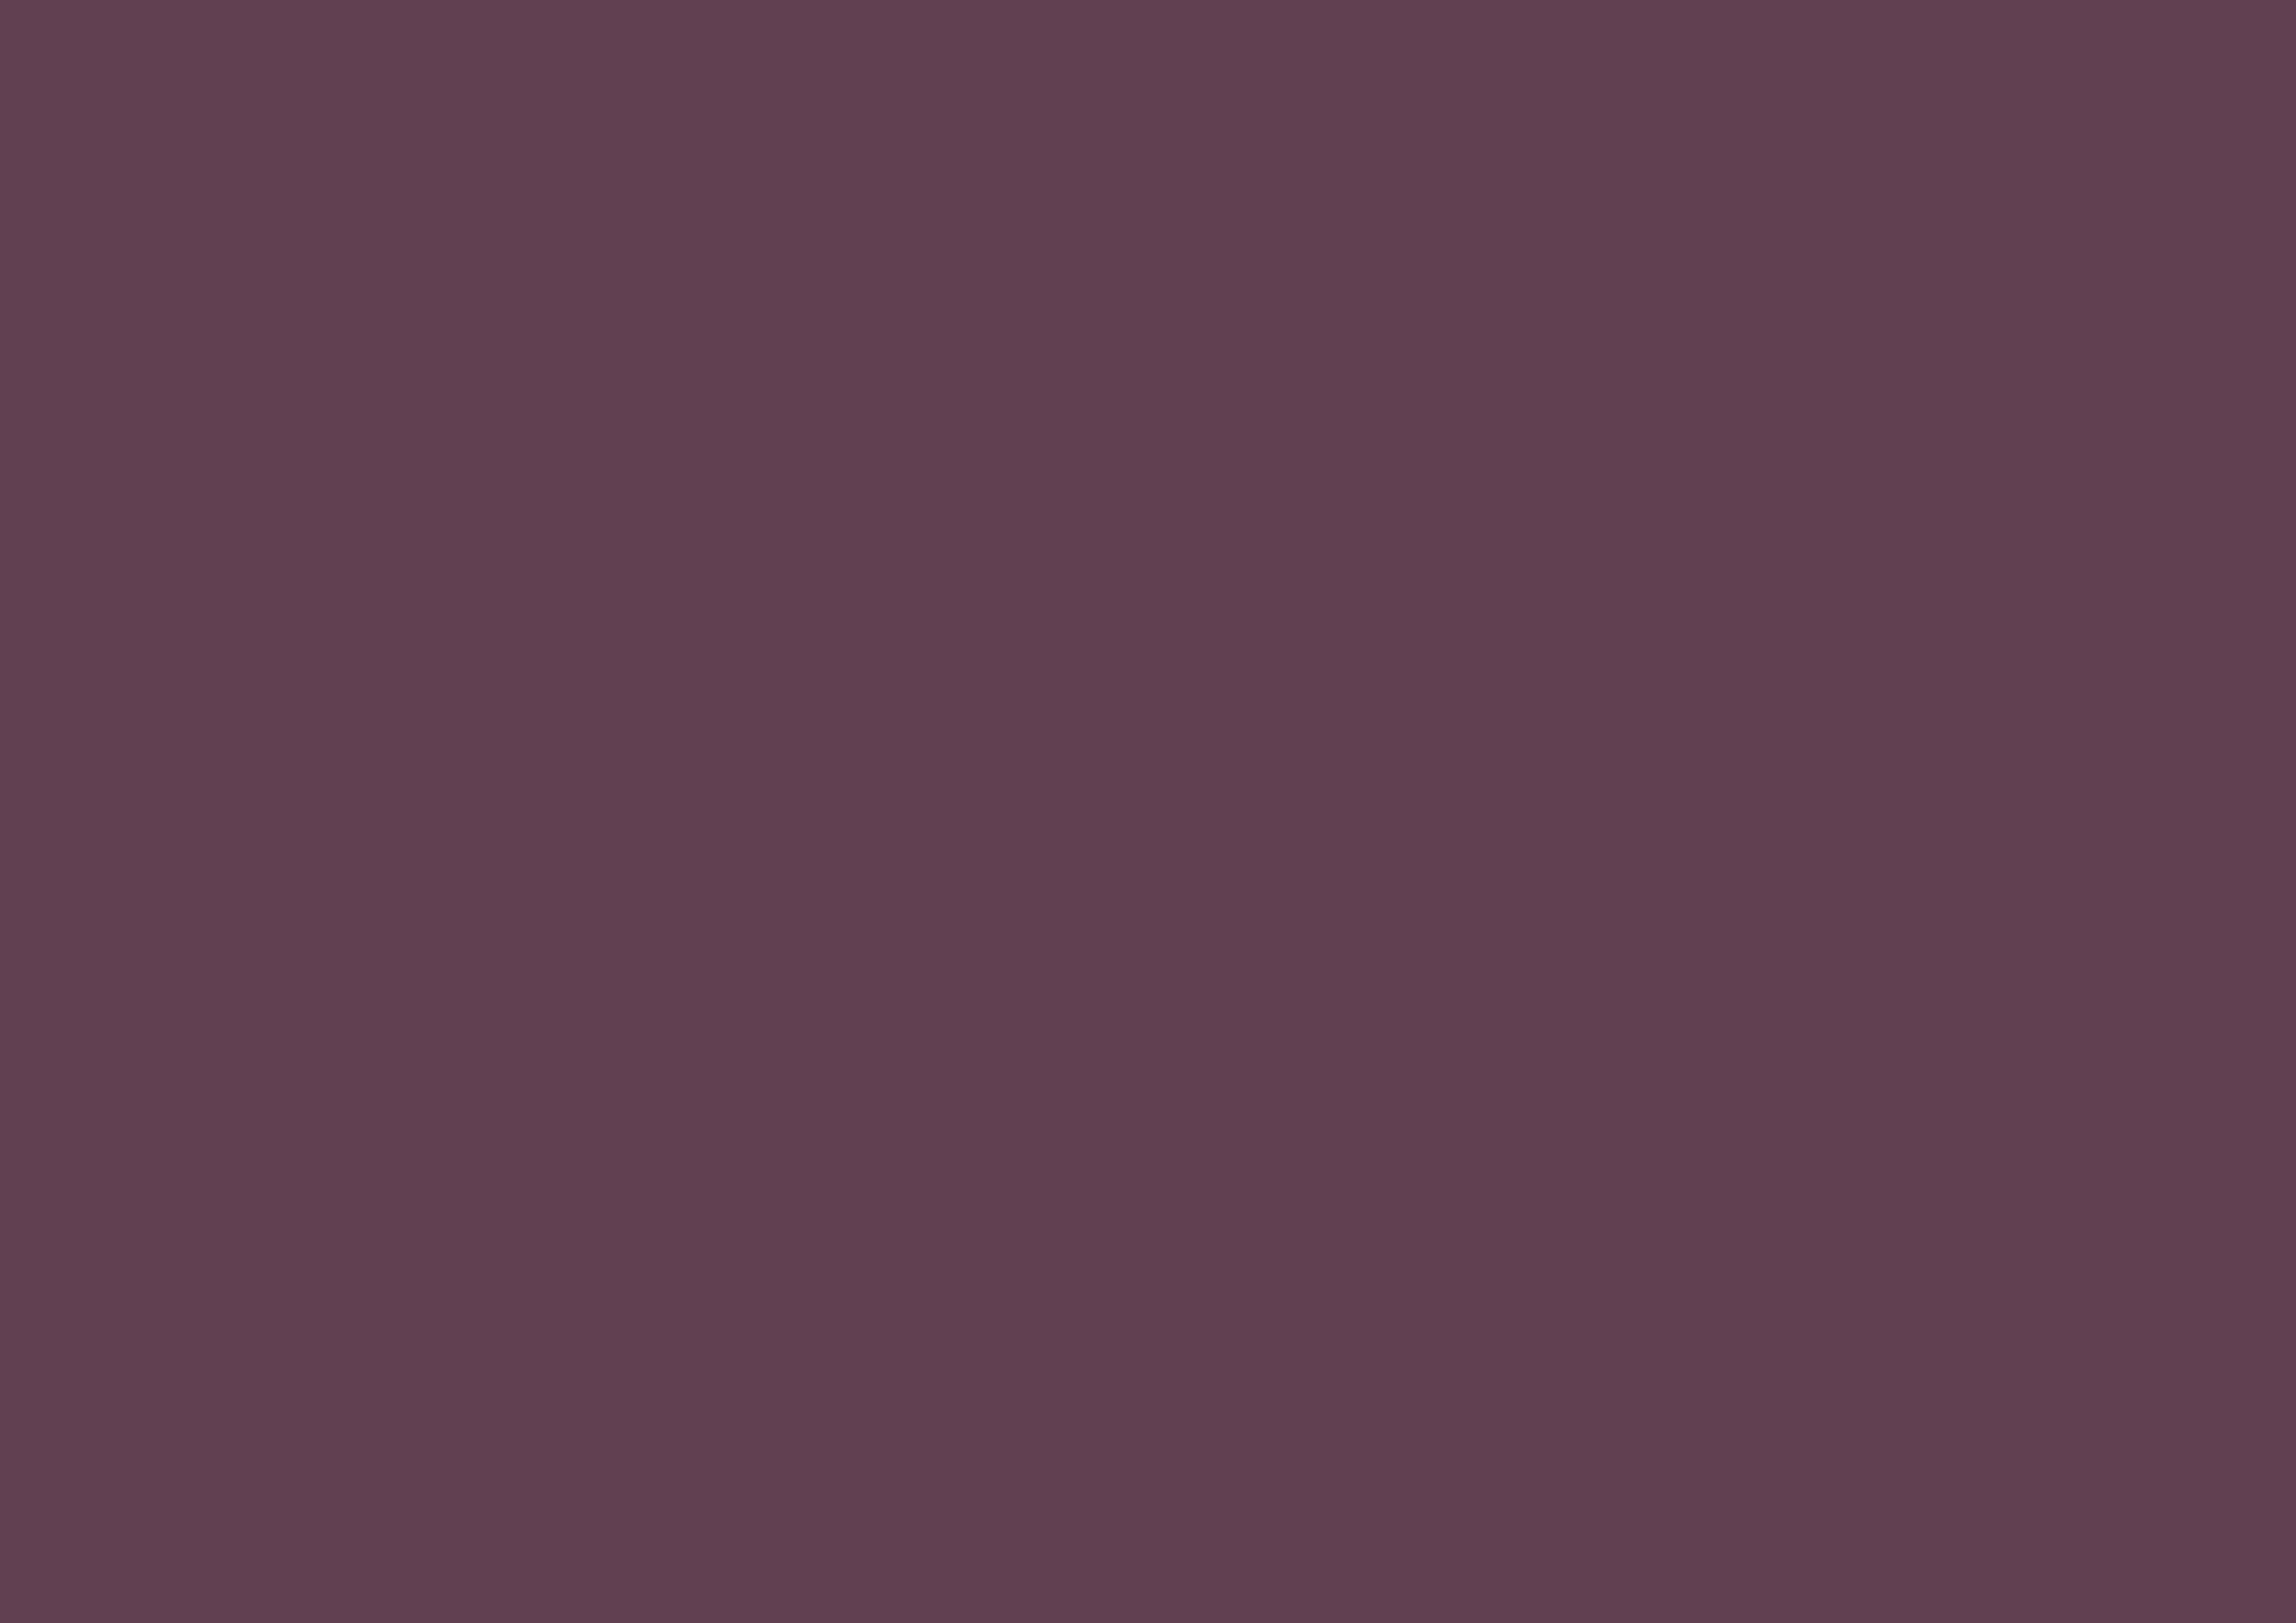 3508x2480 Eggplant Solid Color Background